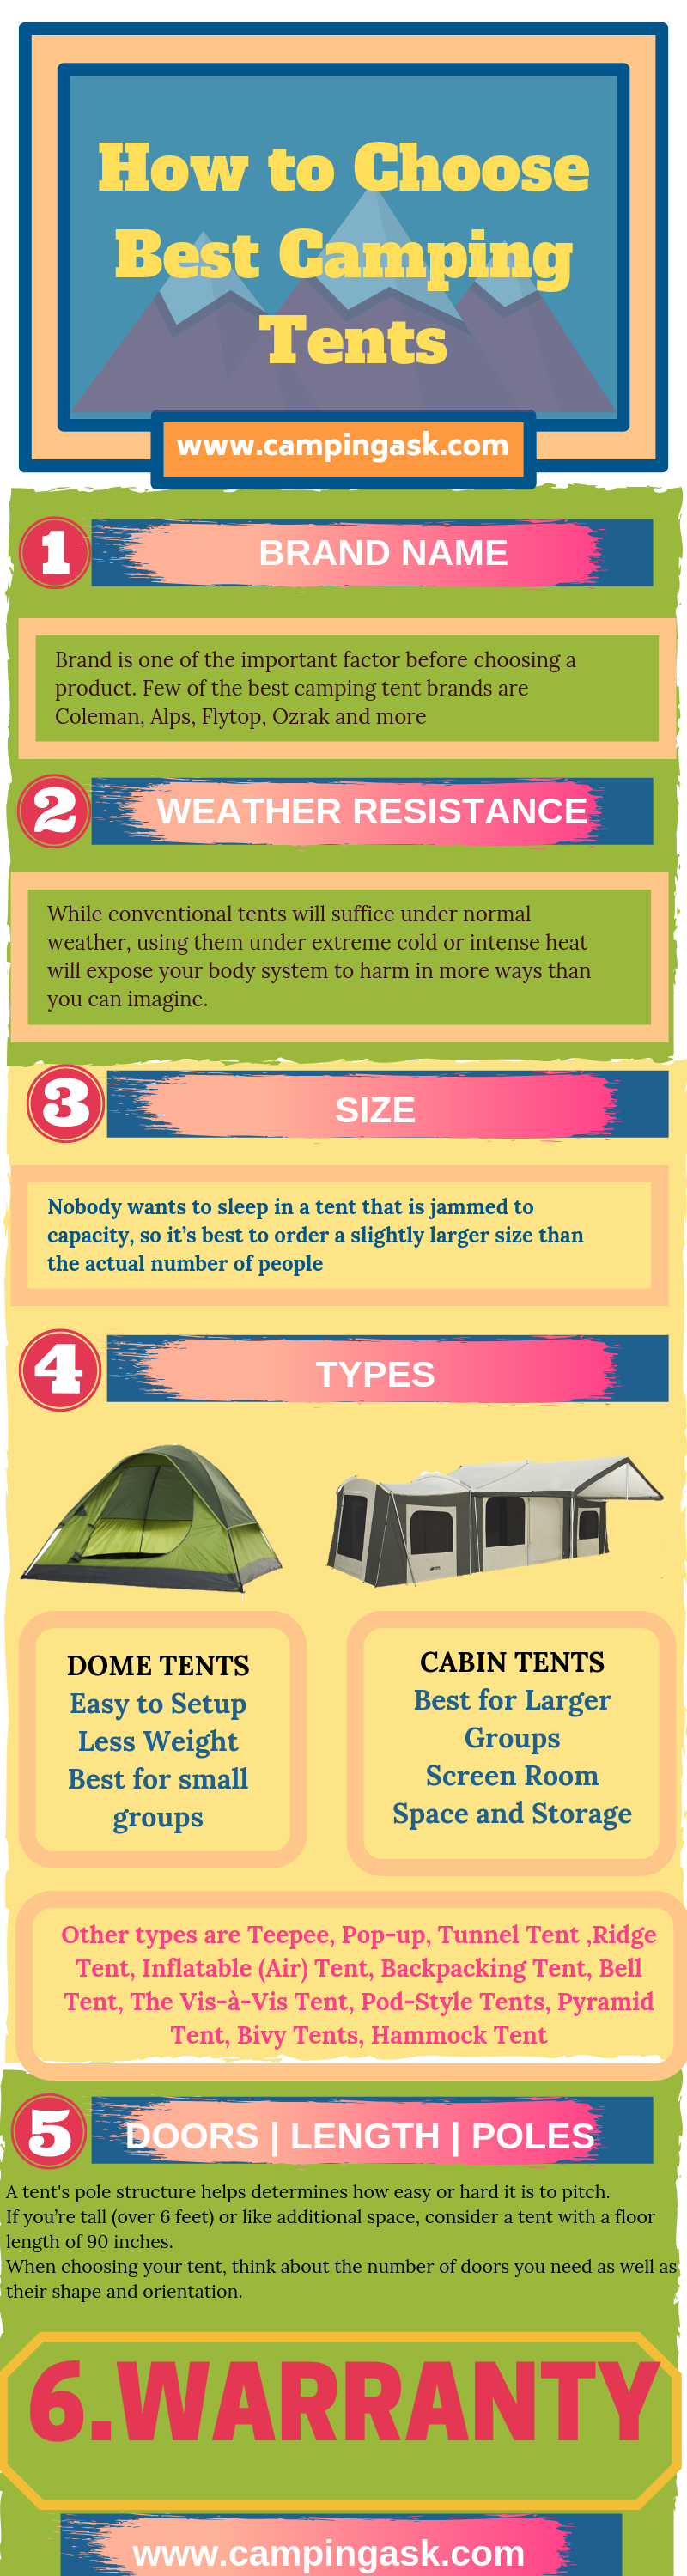 How to Choose Best Camping Tent